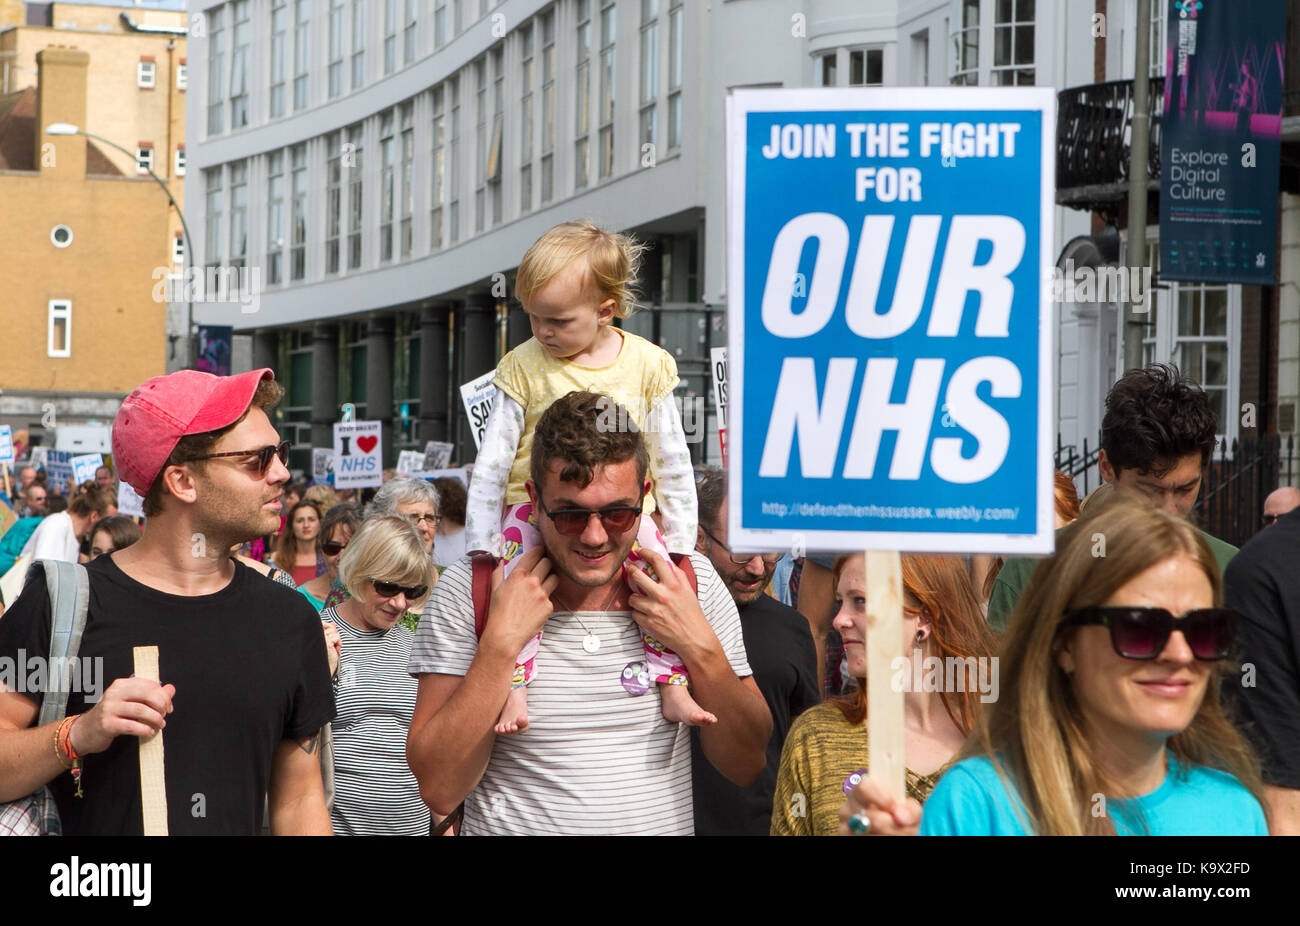 Sussex, UK. 24th September, 2017. Defend Our NHS protesters march through Brighton UK Credit: Matt Duckett/ImagesLive/ZUMA - Stock Image